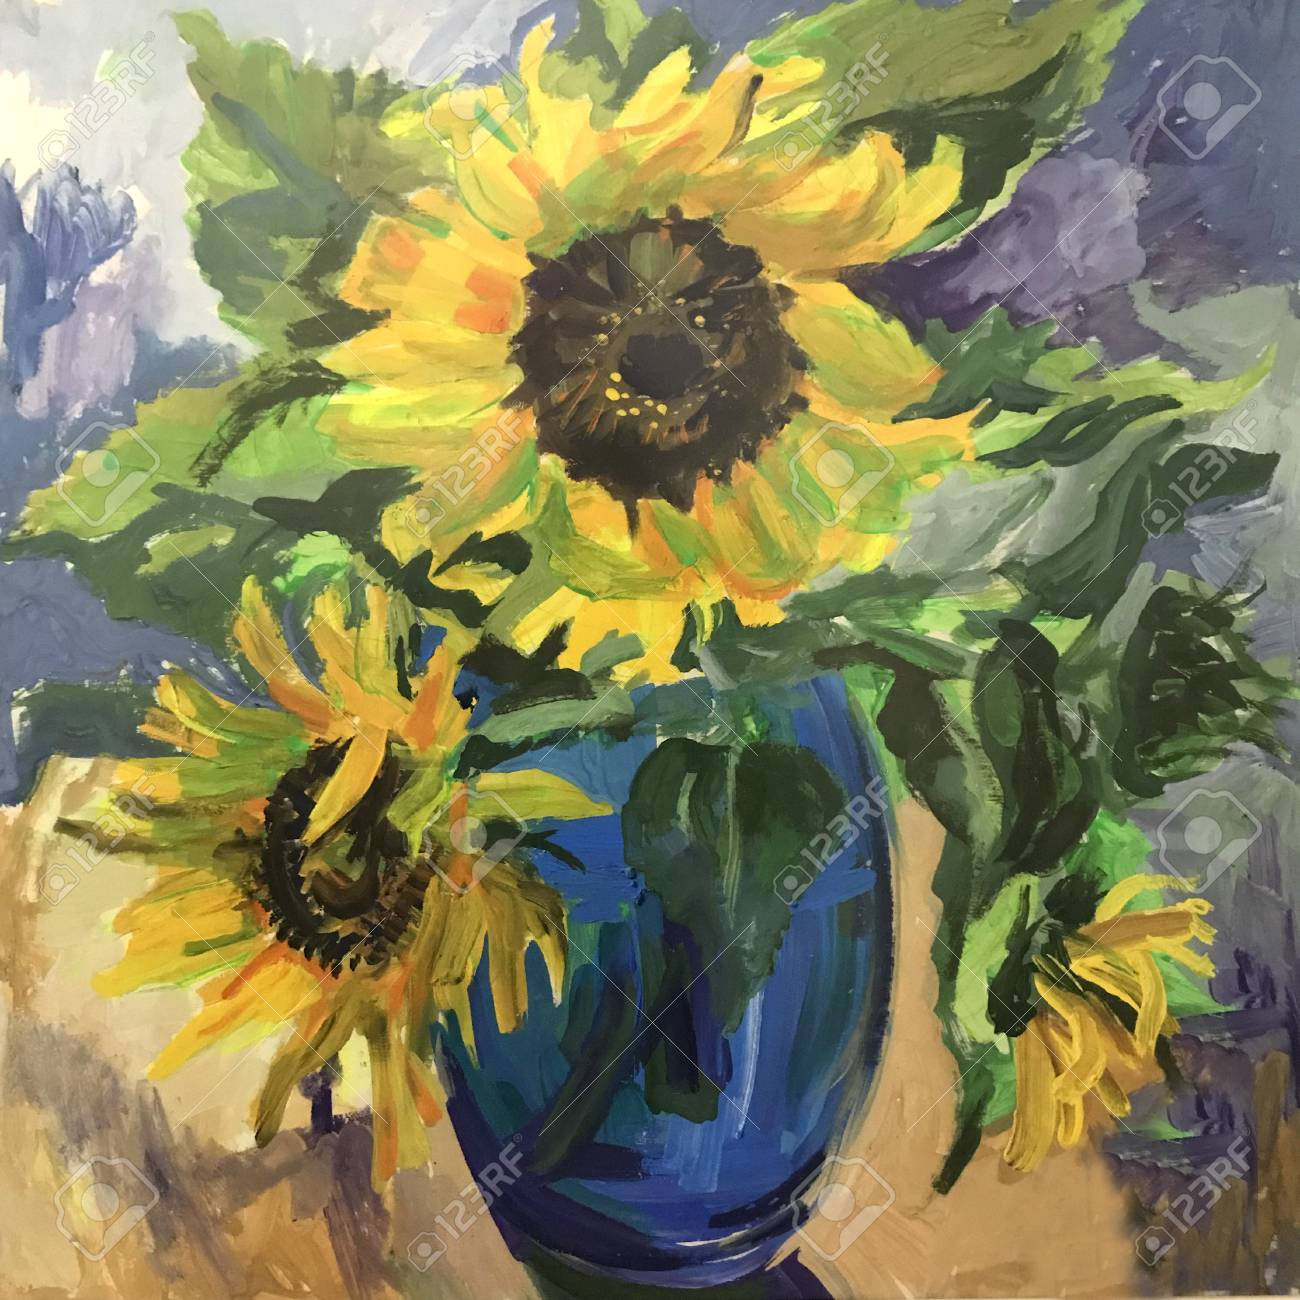 Drawing Of Sunflowers In A Blue Vase Picture Contains An Interesting